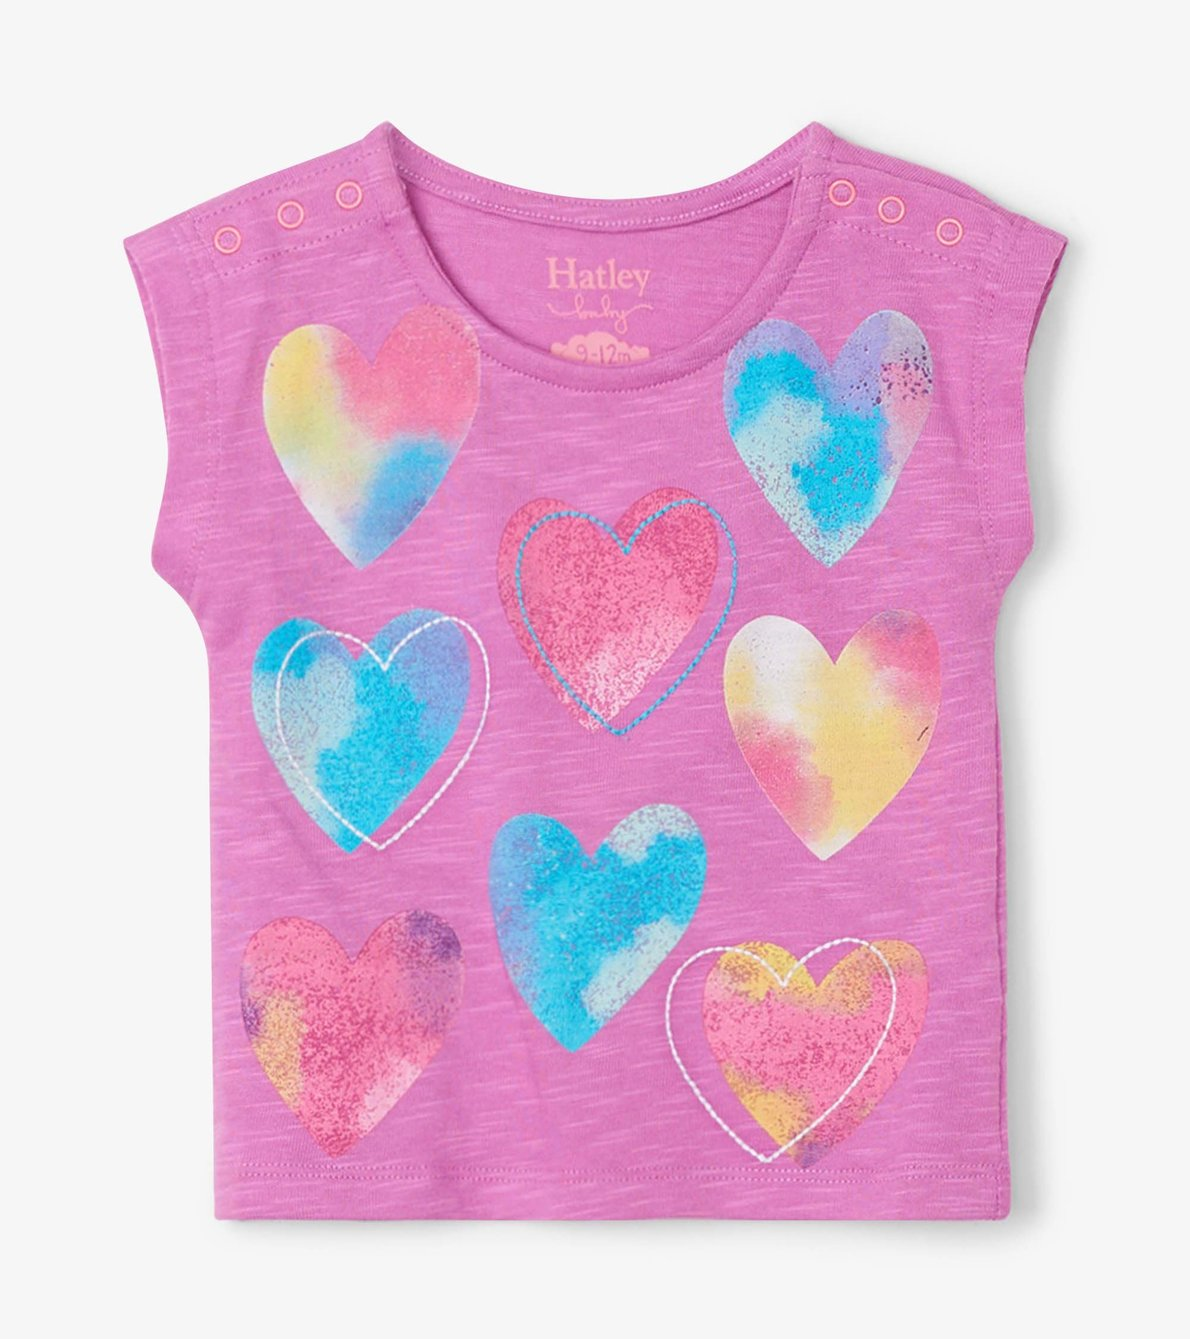 View larger image of Sweet Hearts Baby Tee